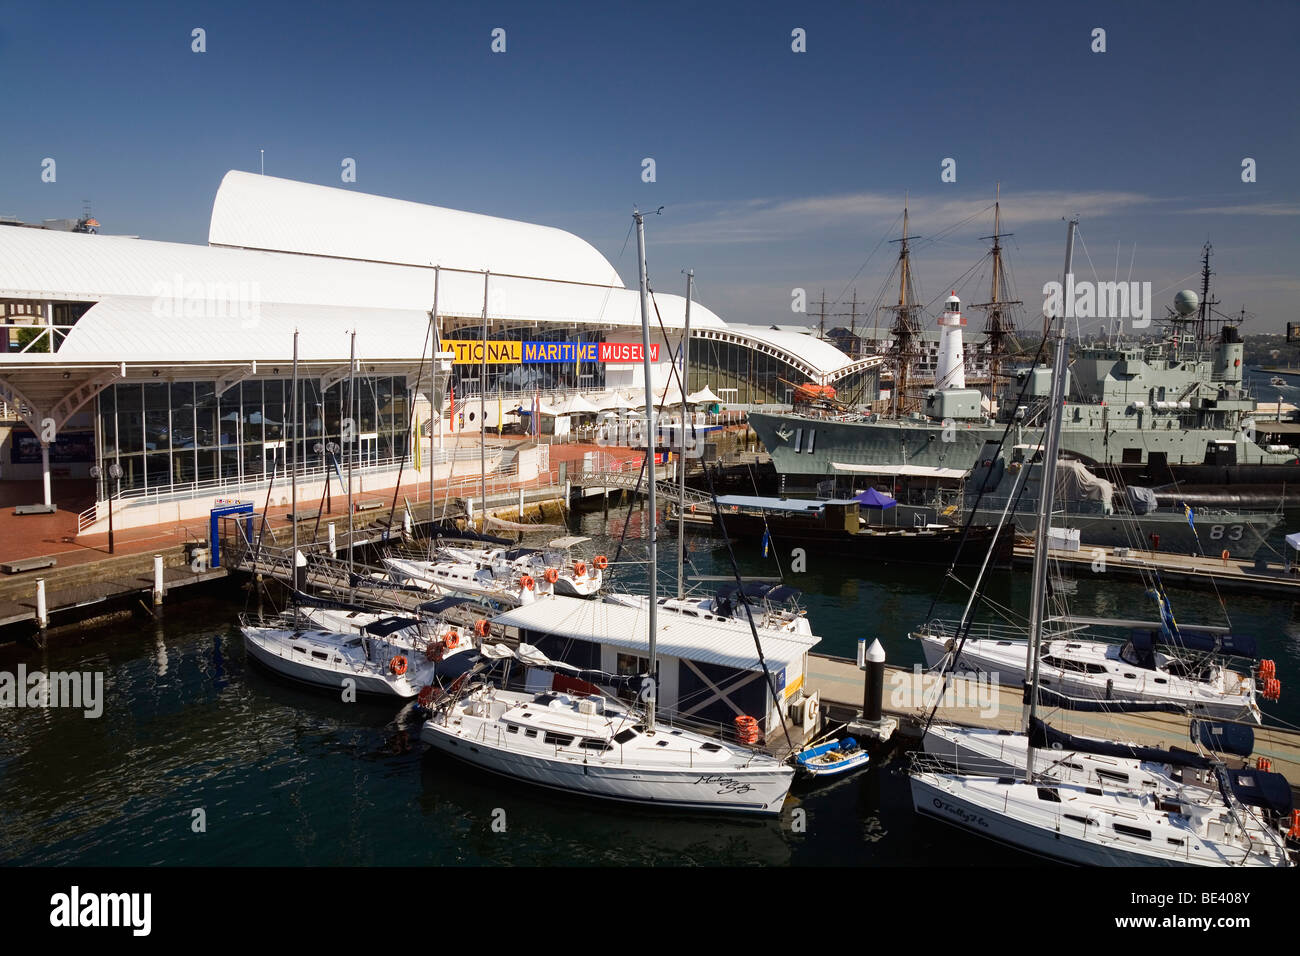 Australian National Maritime Museum at Darling Harbour. Sydney, New South Wales, AUSTRALIA - Stock Image